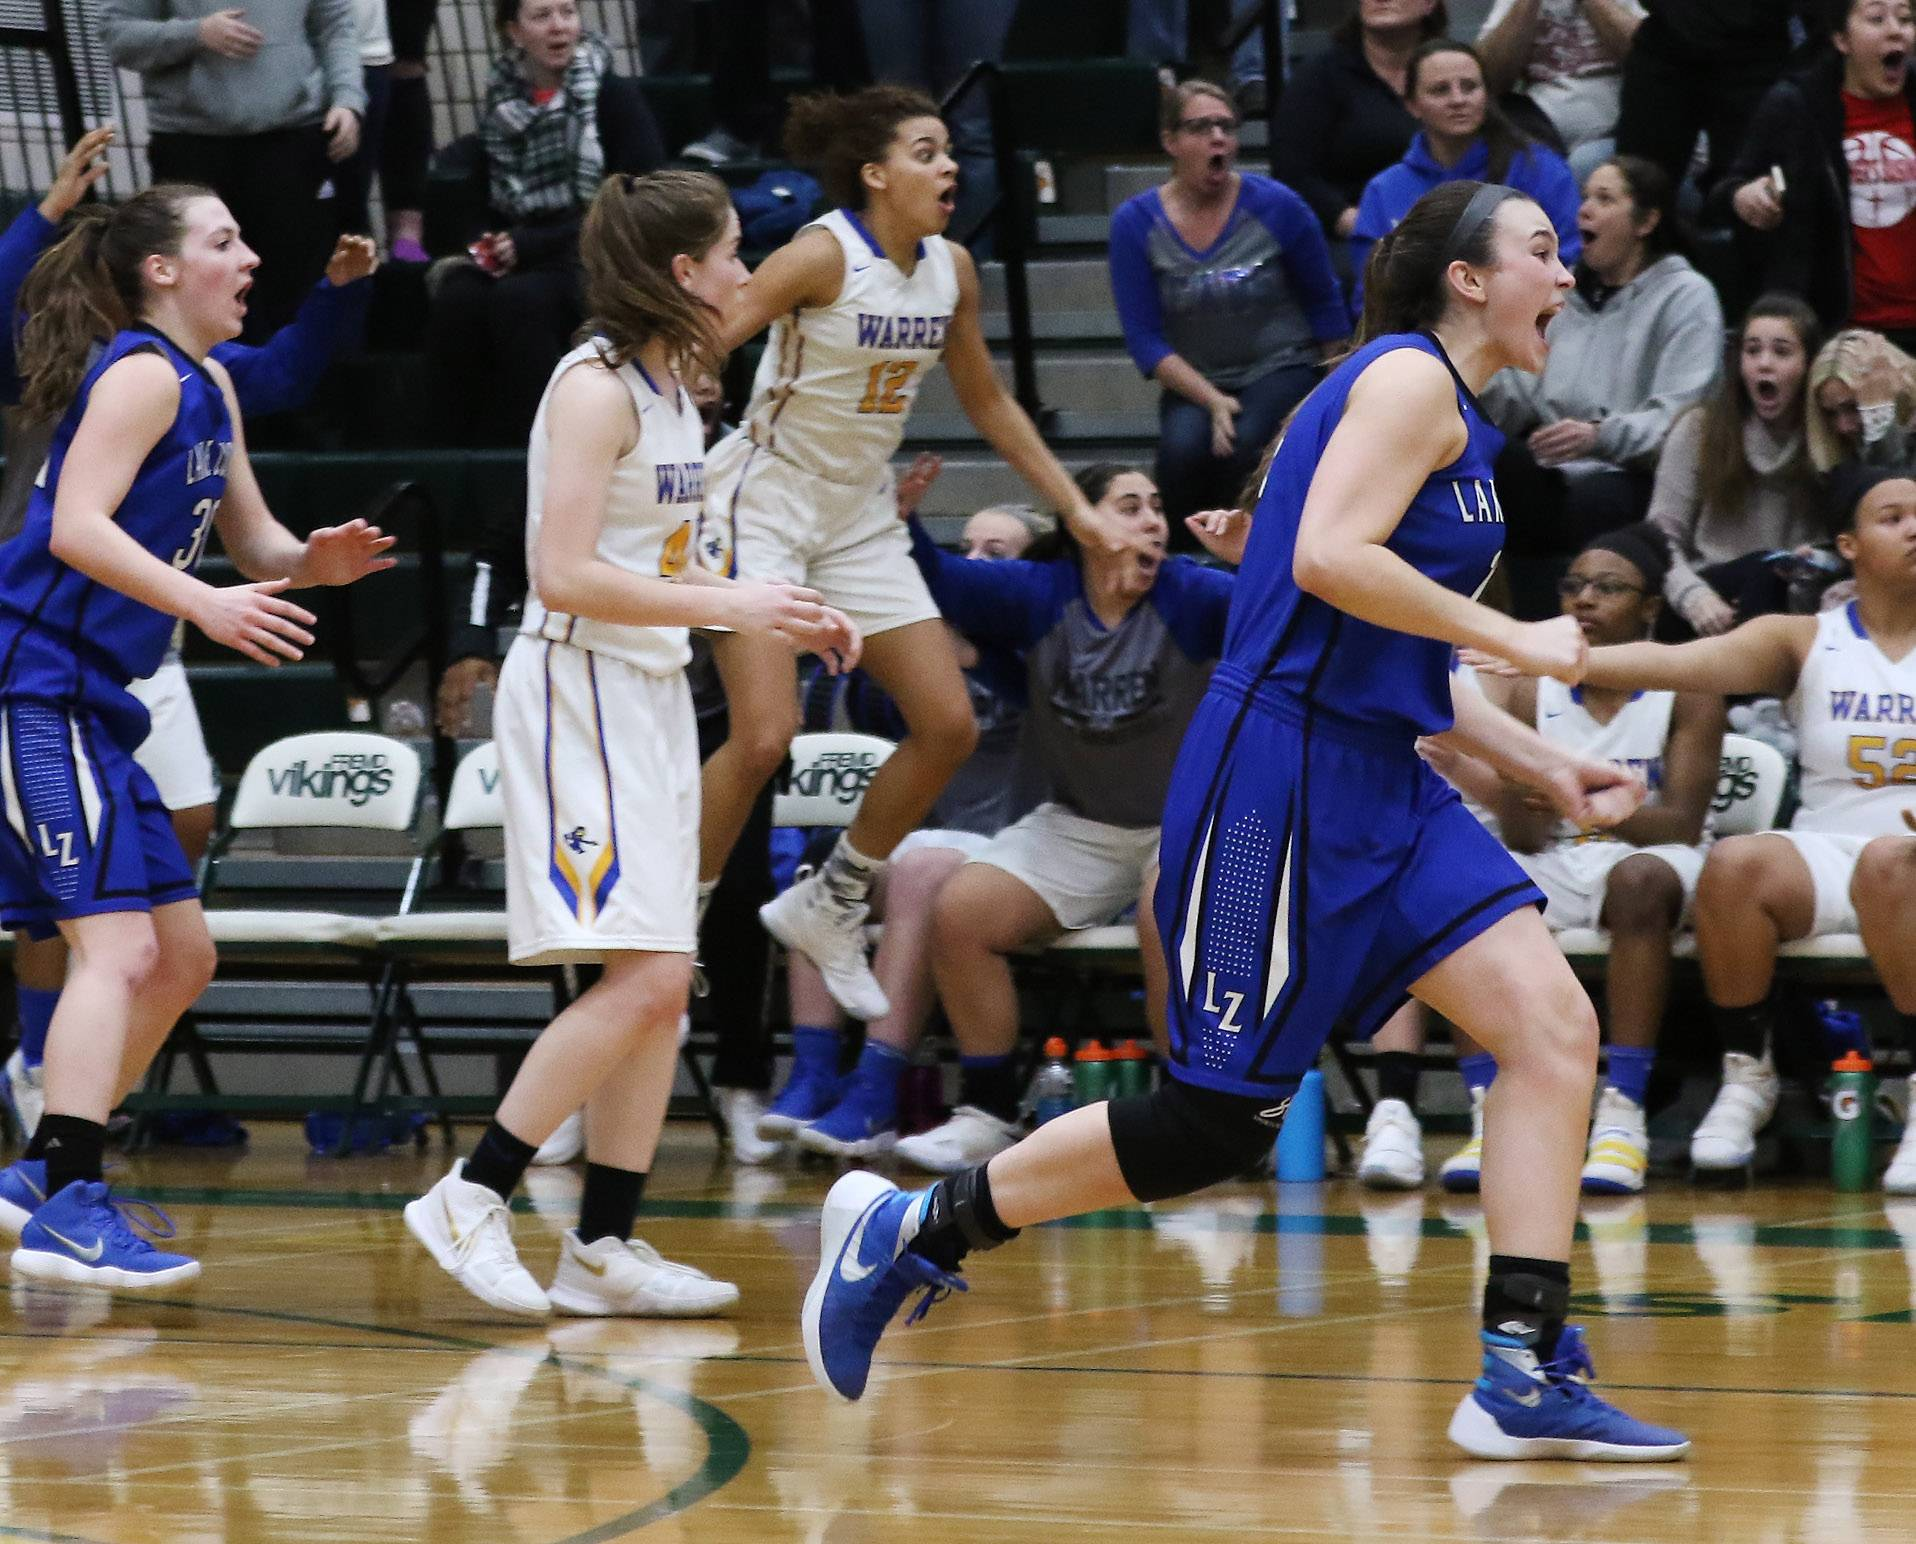 Lake Zurich celebrates as a last-second 3-point attempt by Warren is too late in the championship game of the Fremd sectional on Thursday.